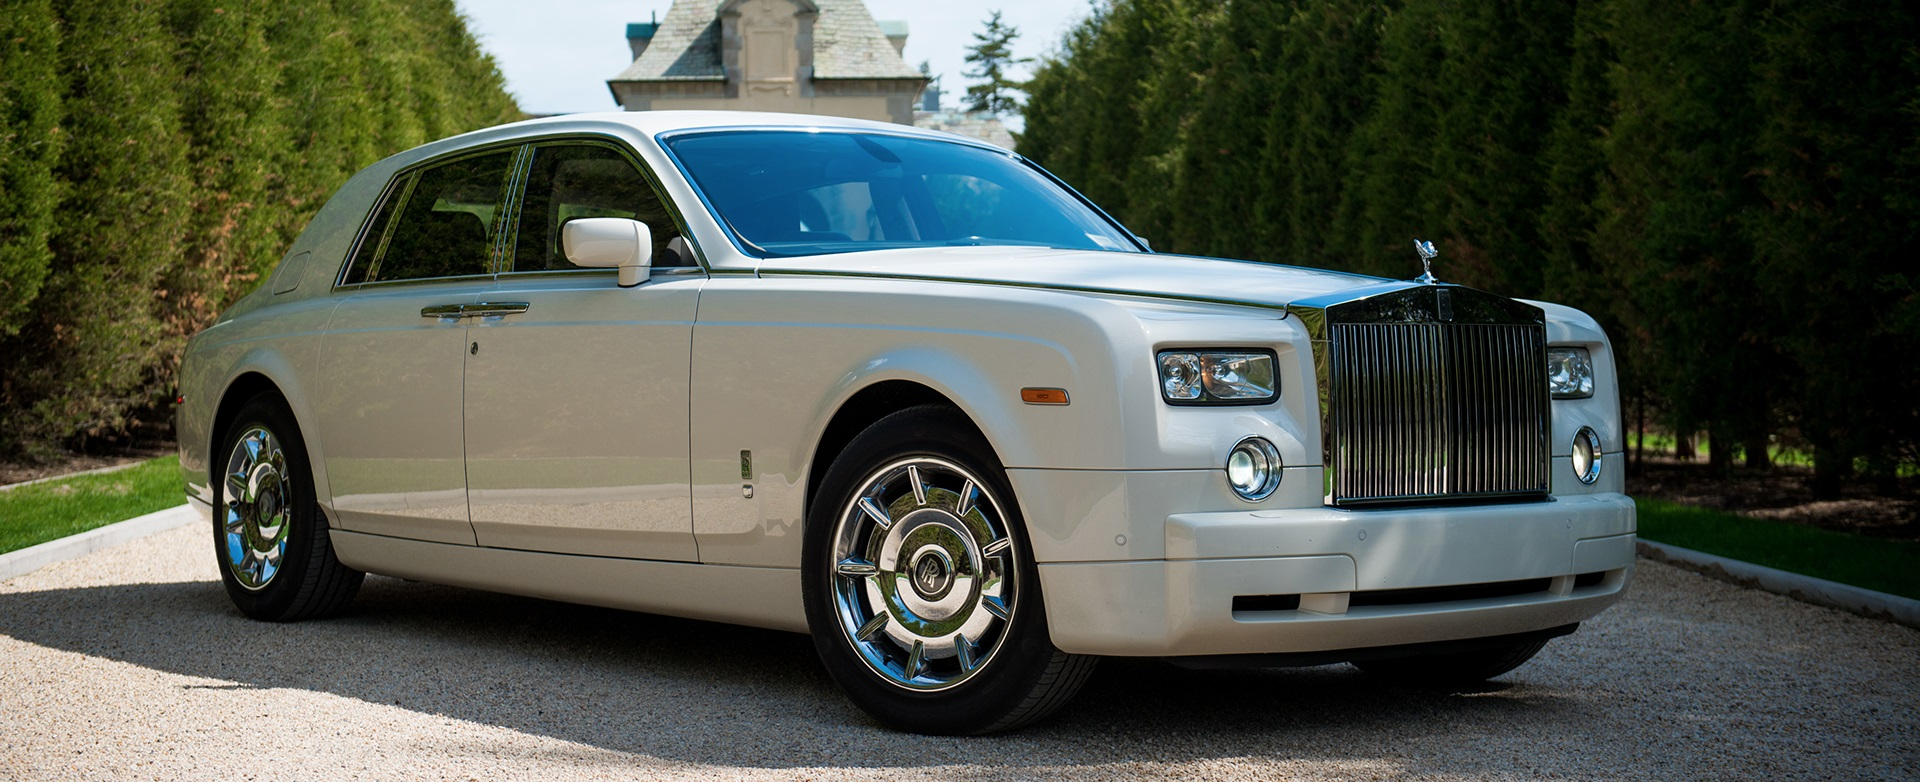 Rolls Royce Phantom V Luxury Car And Limo Service By All